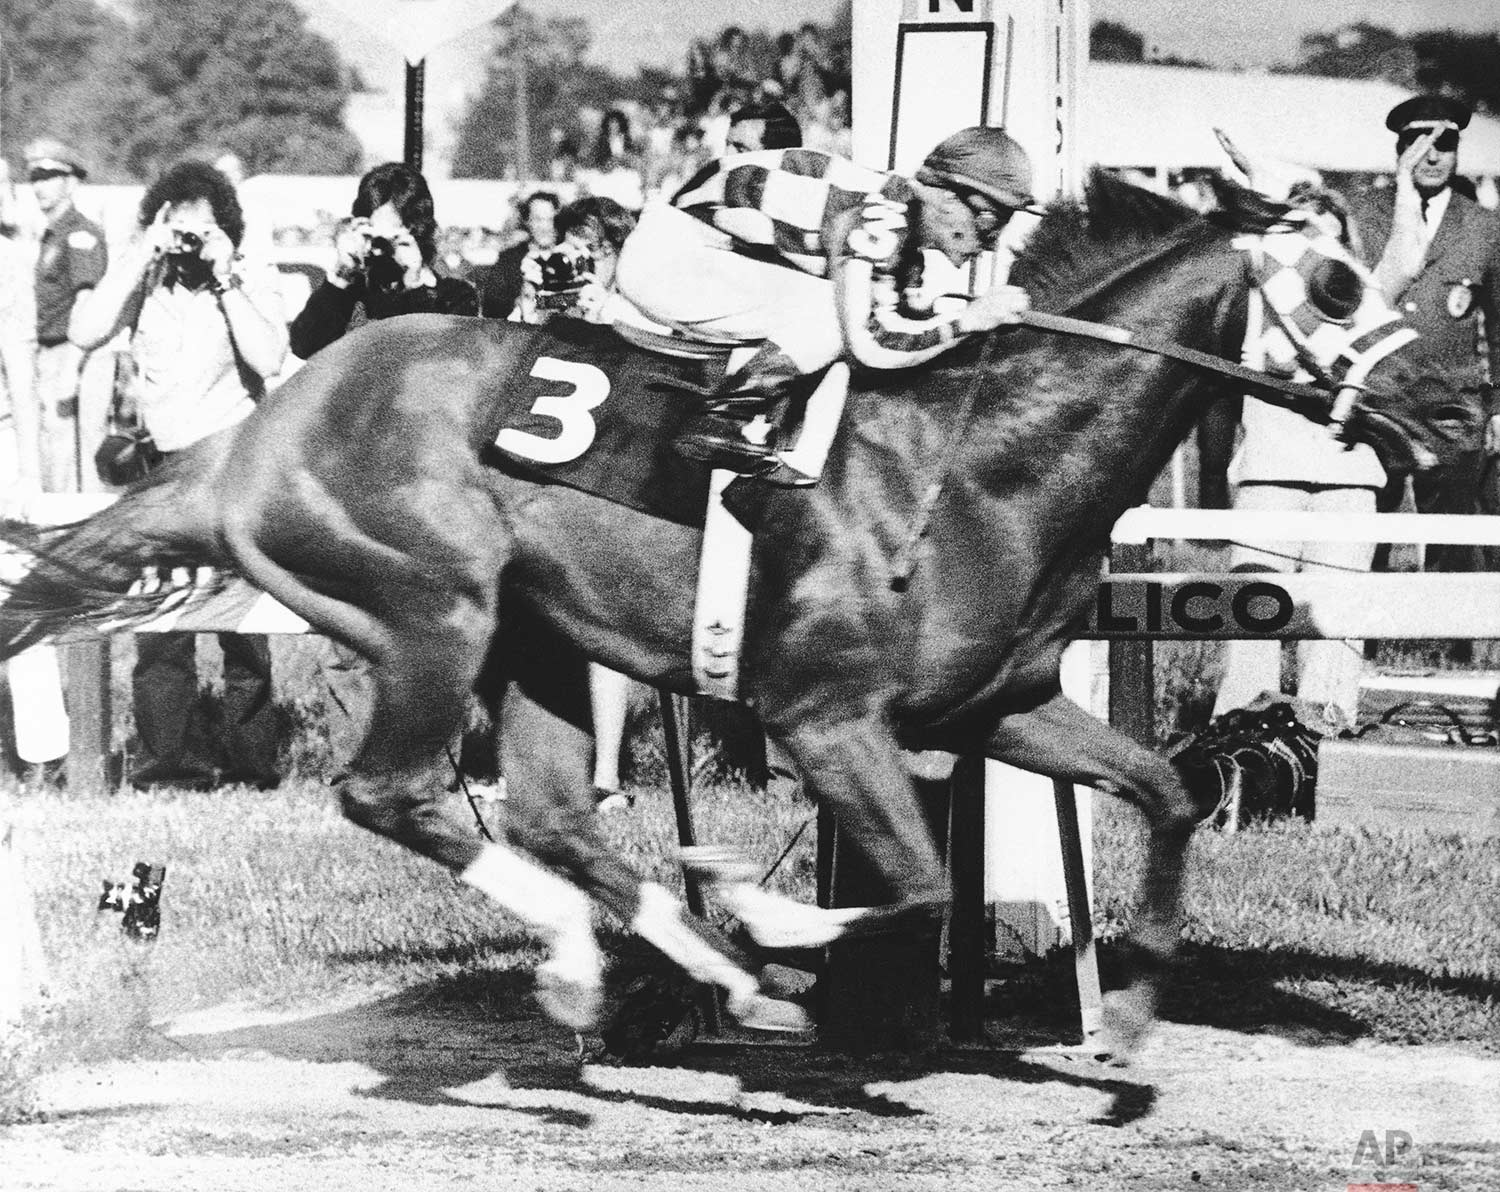 #OTD in 1973, Secretariat won the Preakness Stakes, the second of his Triple Crown victories. https://t.co/ZWdKUVAh9q